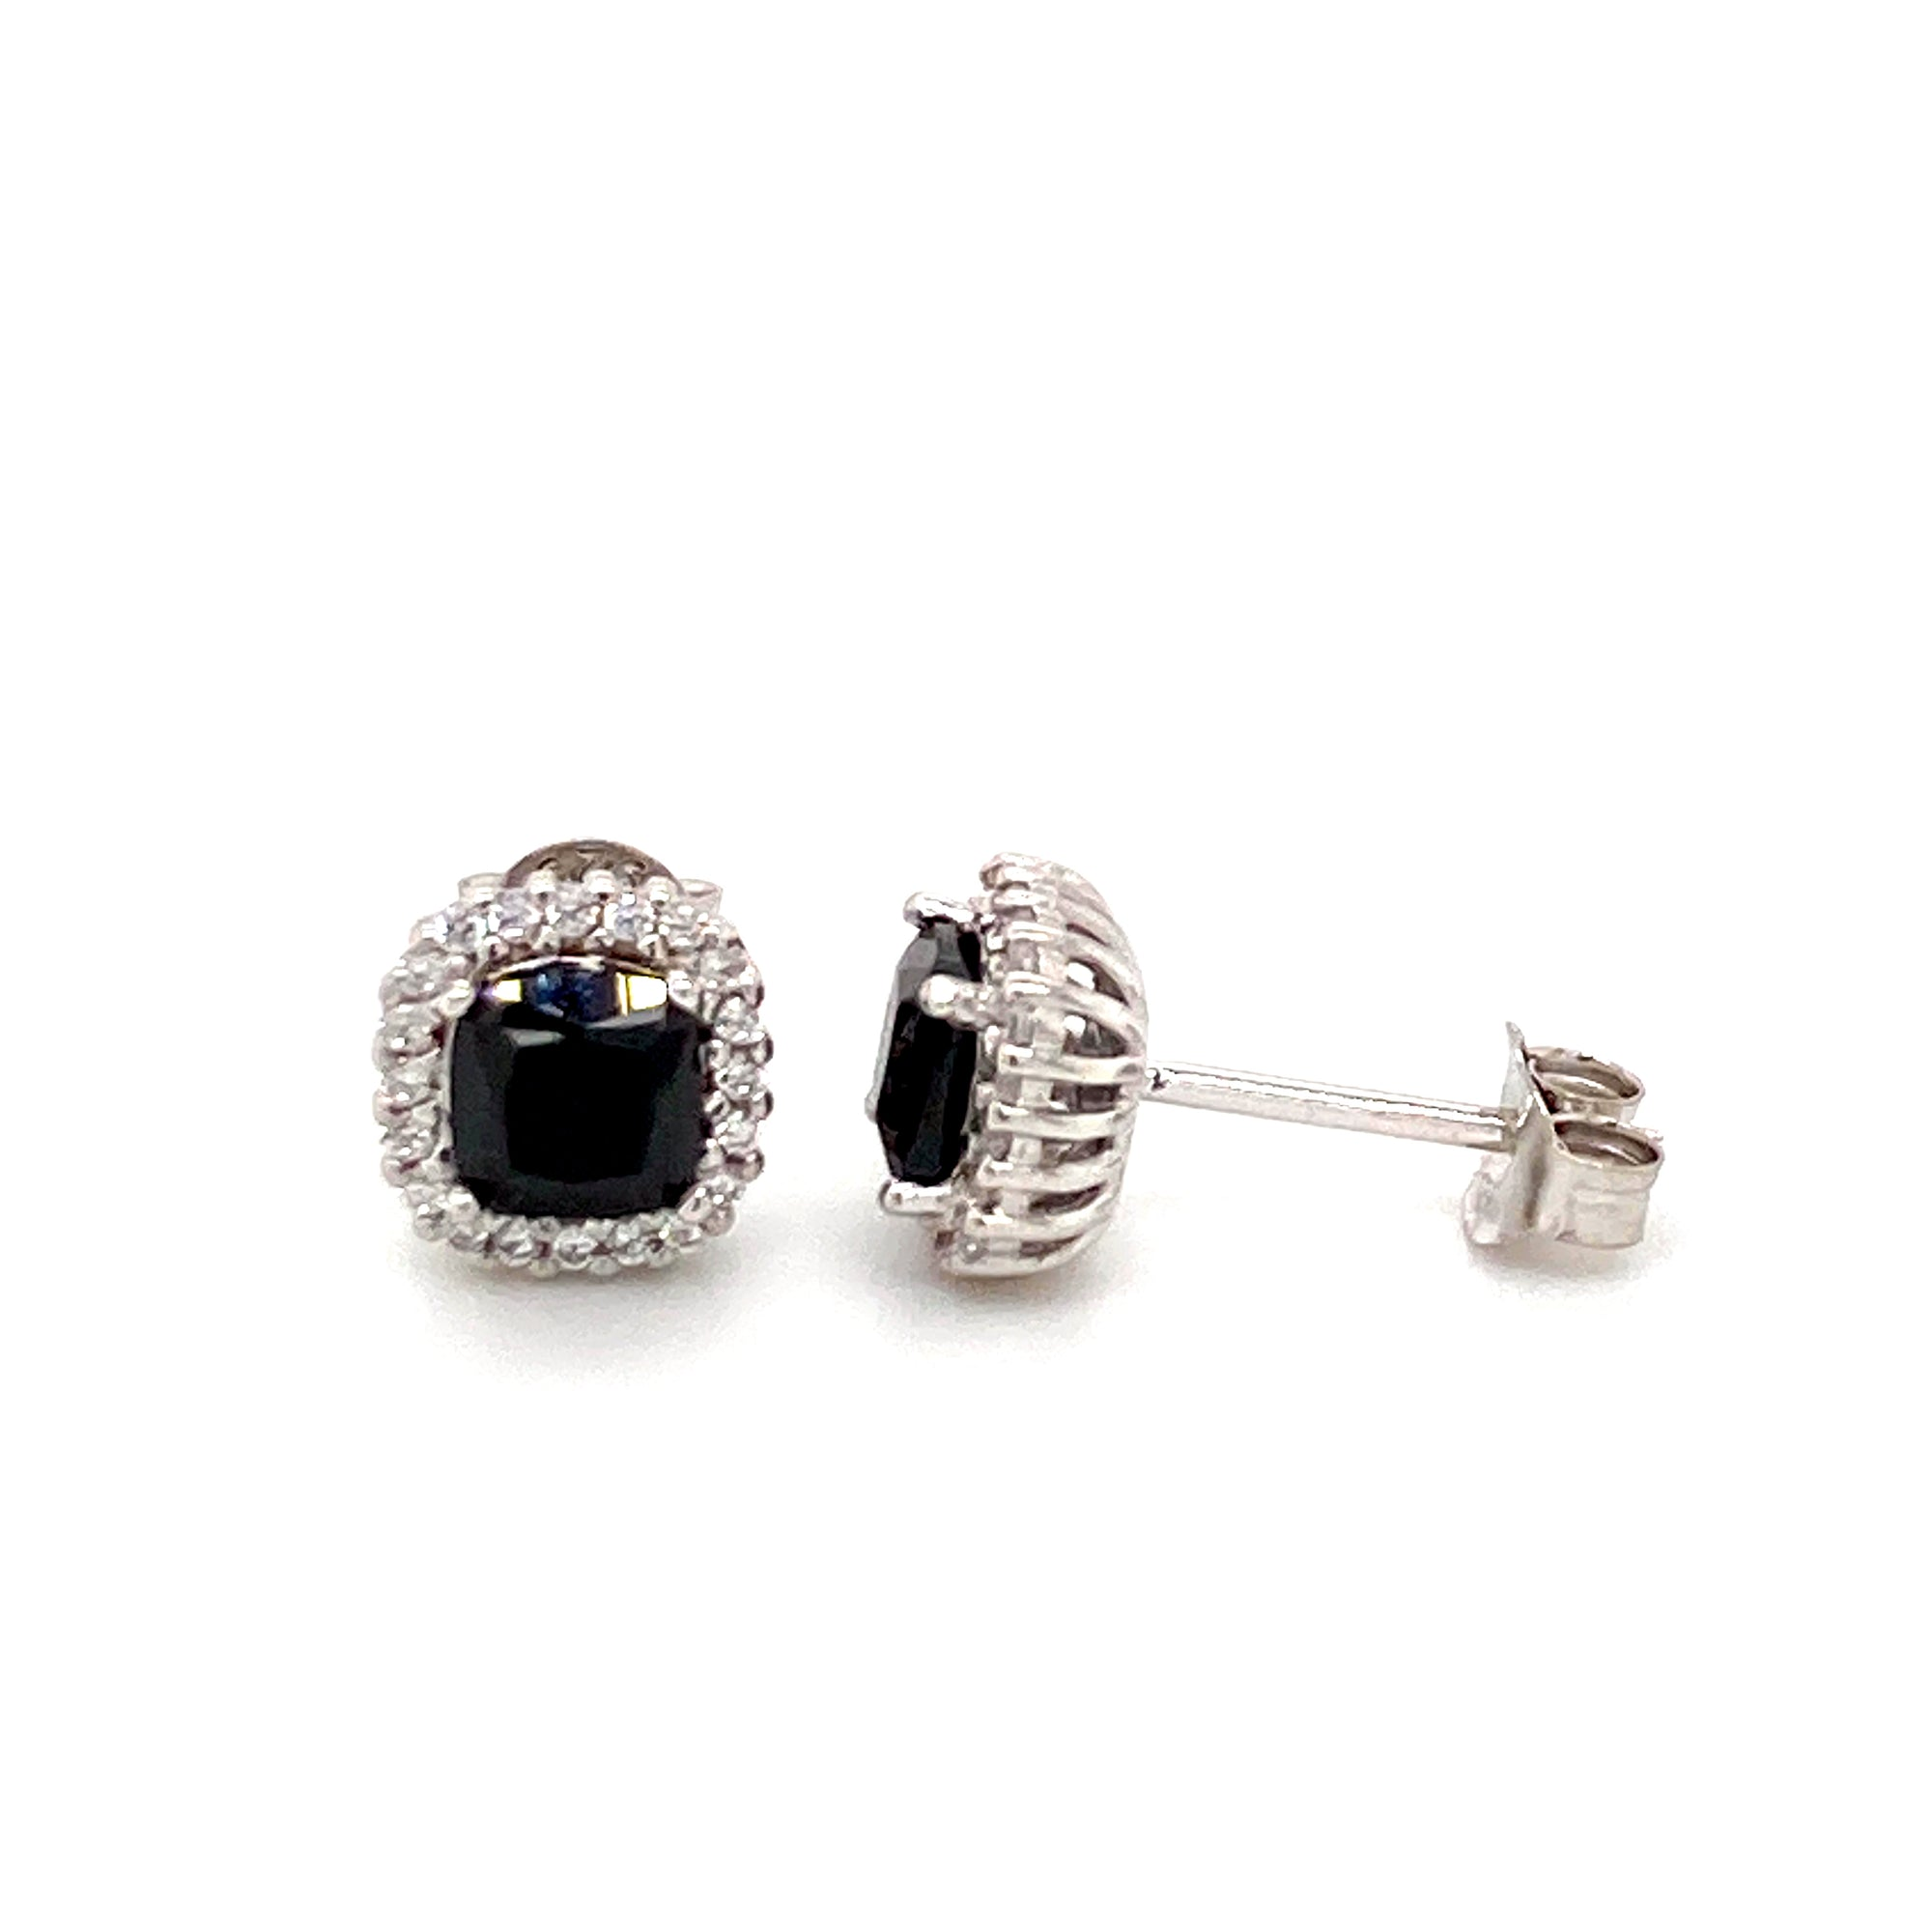 Sterling silver Black cz stud earrings - Red Carpet Jewellers